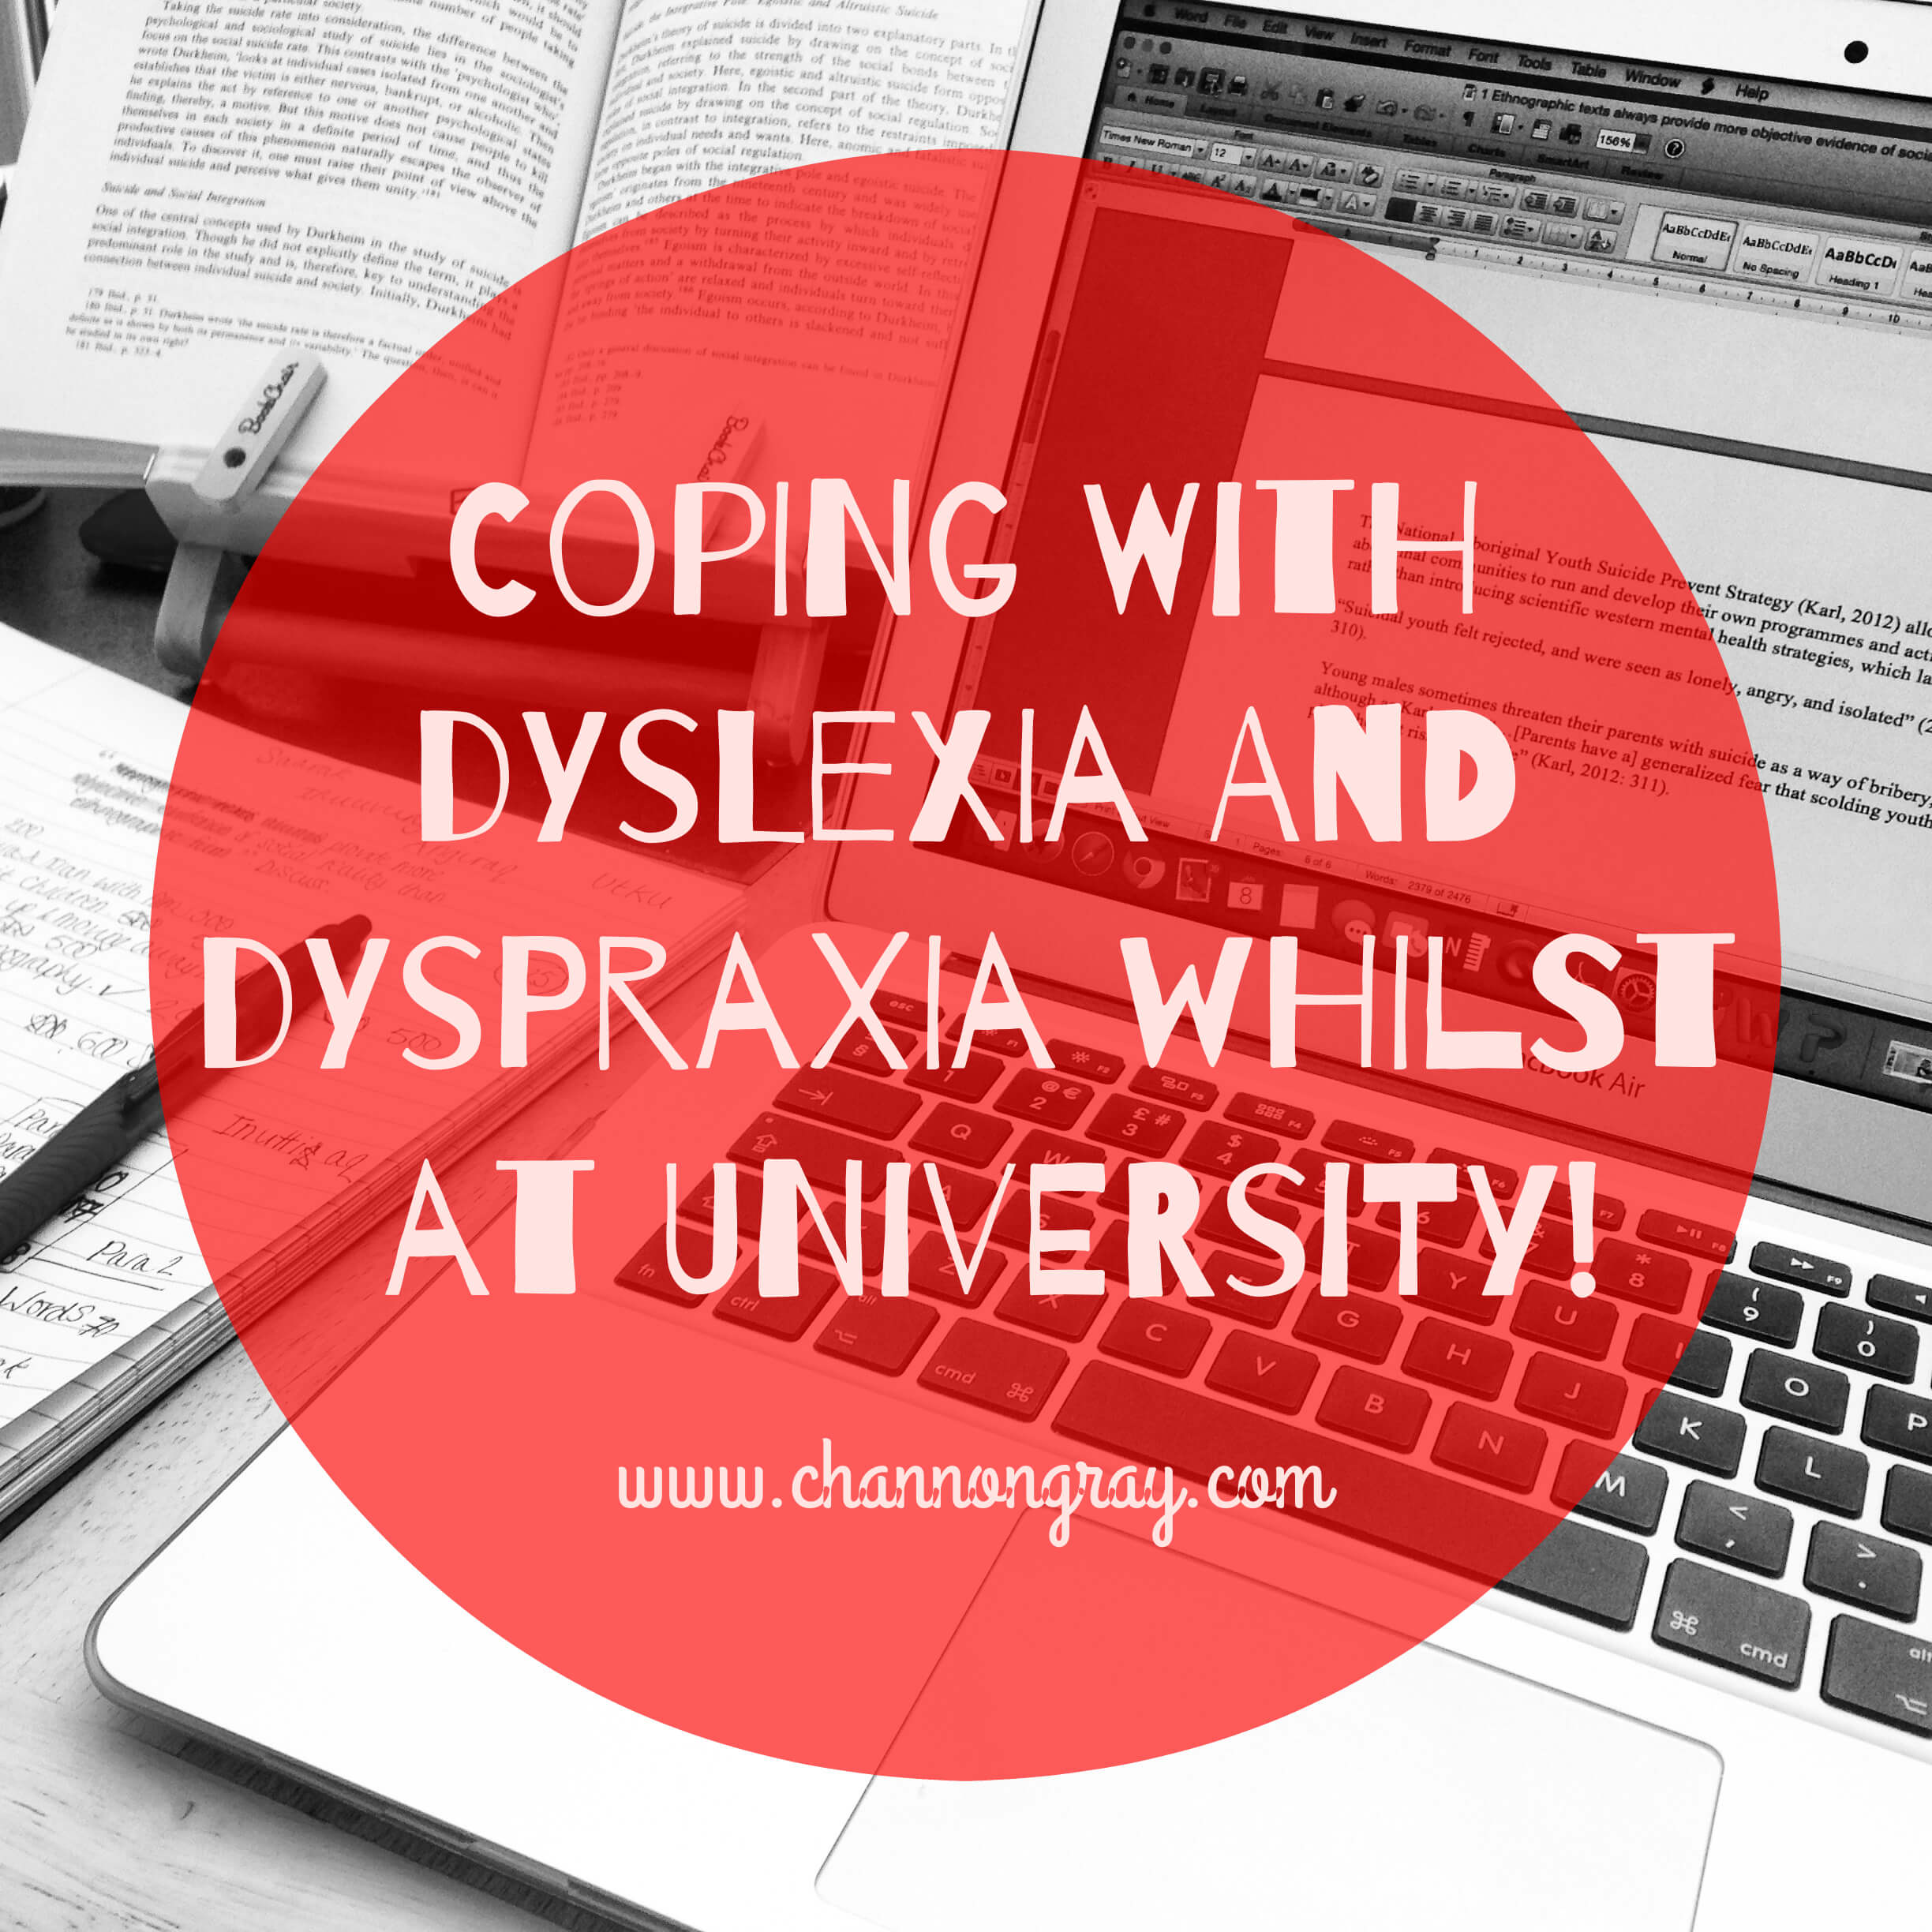 coping dyslexia and dyspraxia whilst at university coping dyslexia and dyspraxia whilst at university